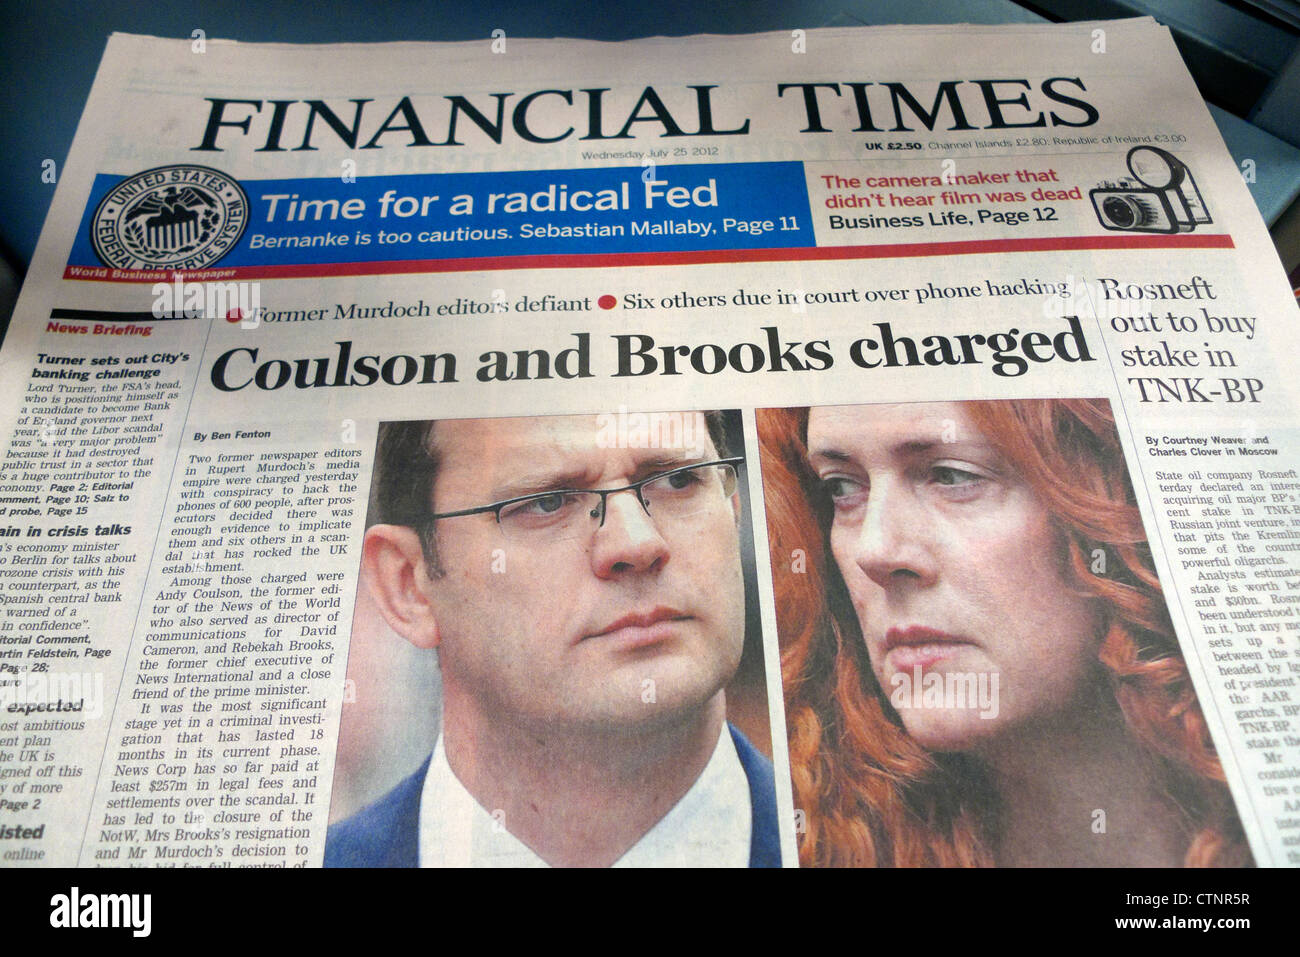 Financial Times newspaper headline 'Coulson and Brooks charged' in phone hacking scandal London UK  25 July - Stock Image